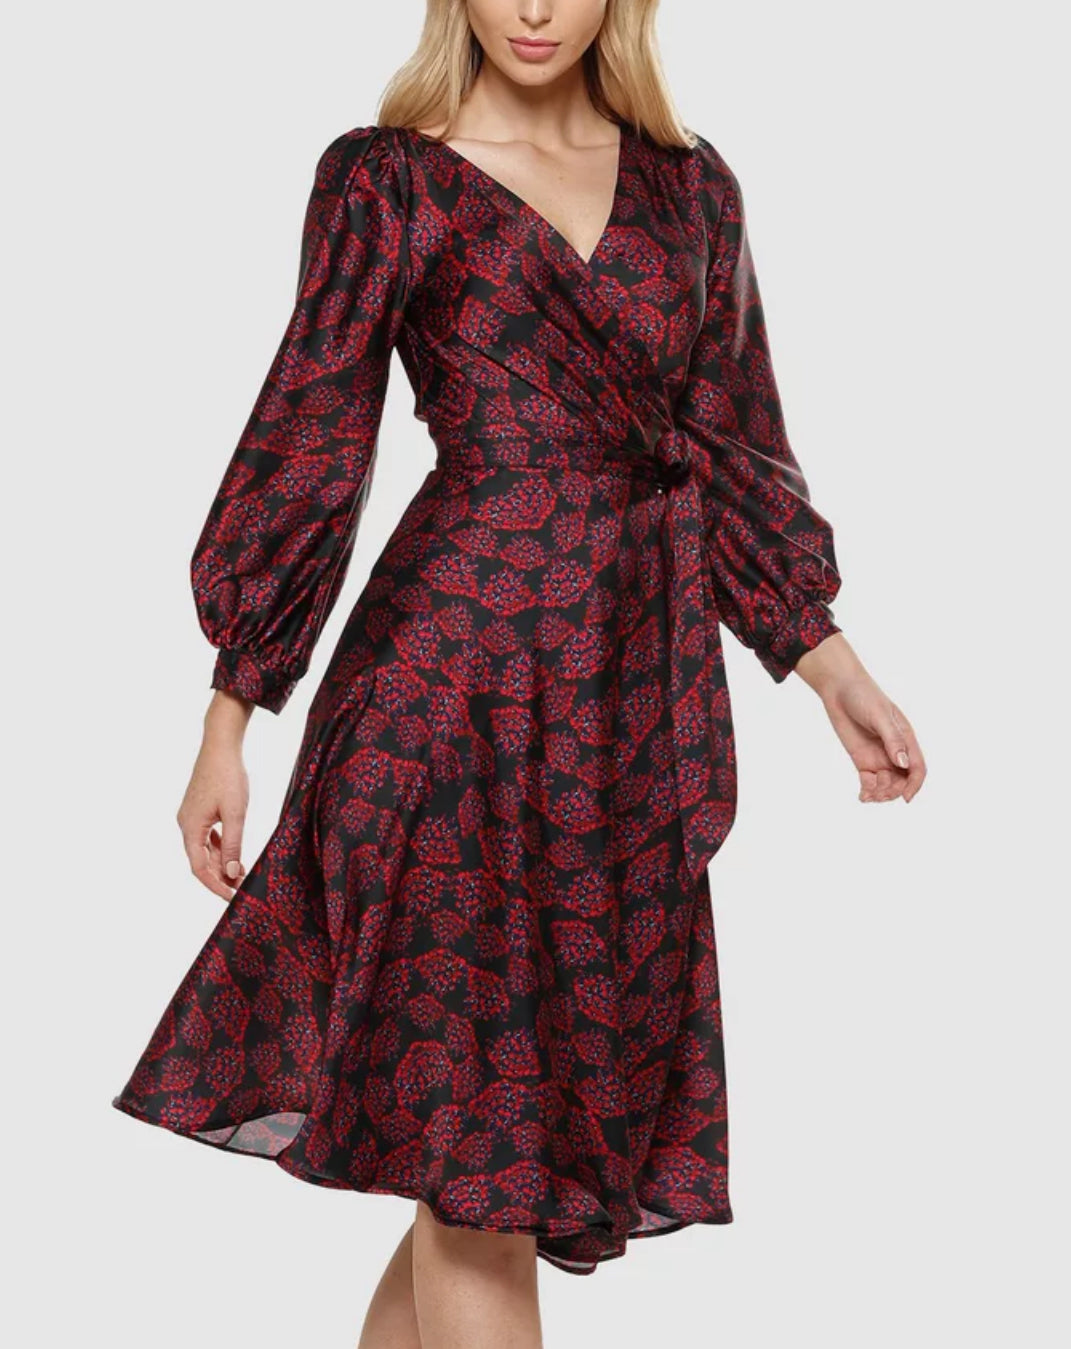 Sacha Drake - Tina wrap dress in burgundy floral print